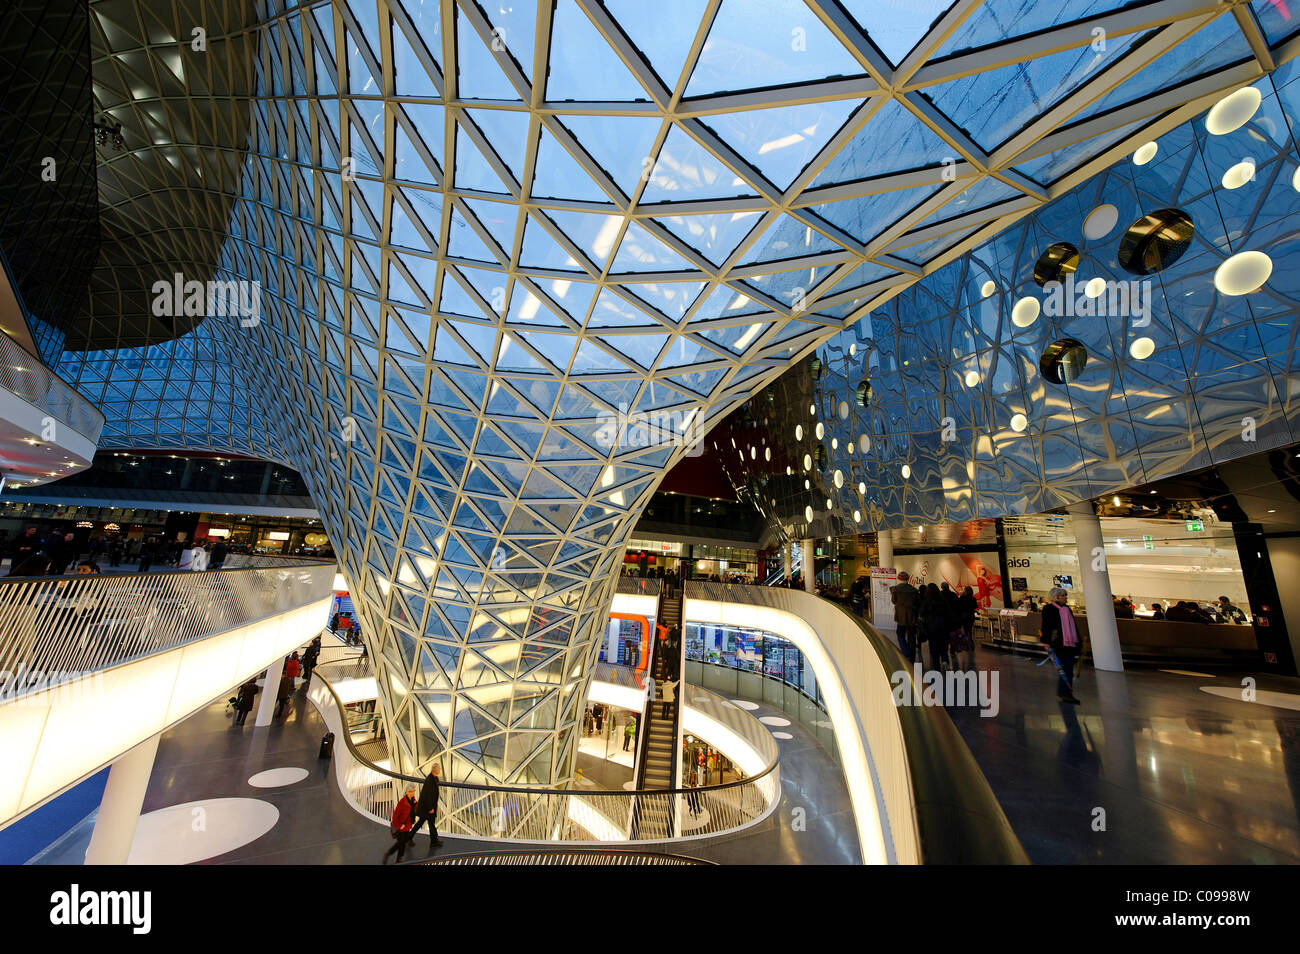 myzeil shopping mall palais quartier architect massimiliano fuksas stock photo royalty free. Black Bedroom Furniture Sets. Home Design Ideas